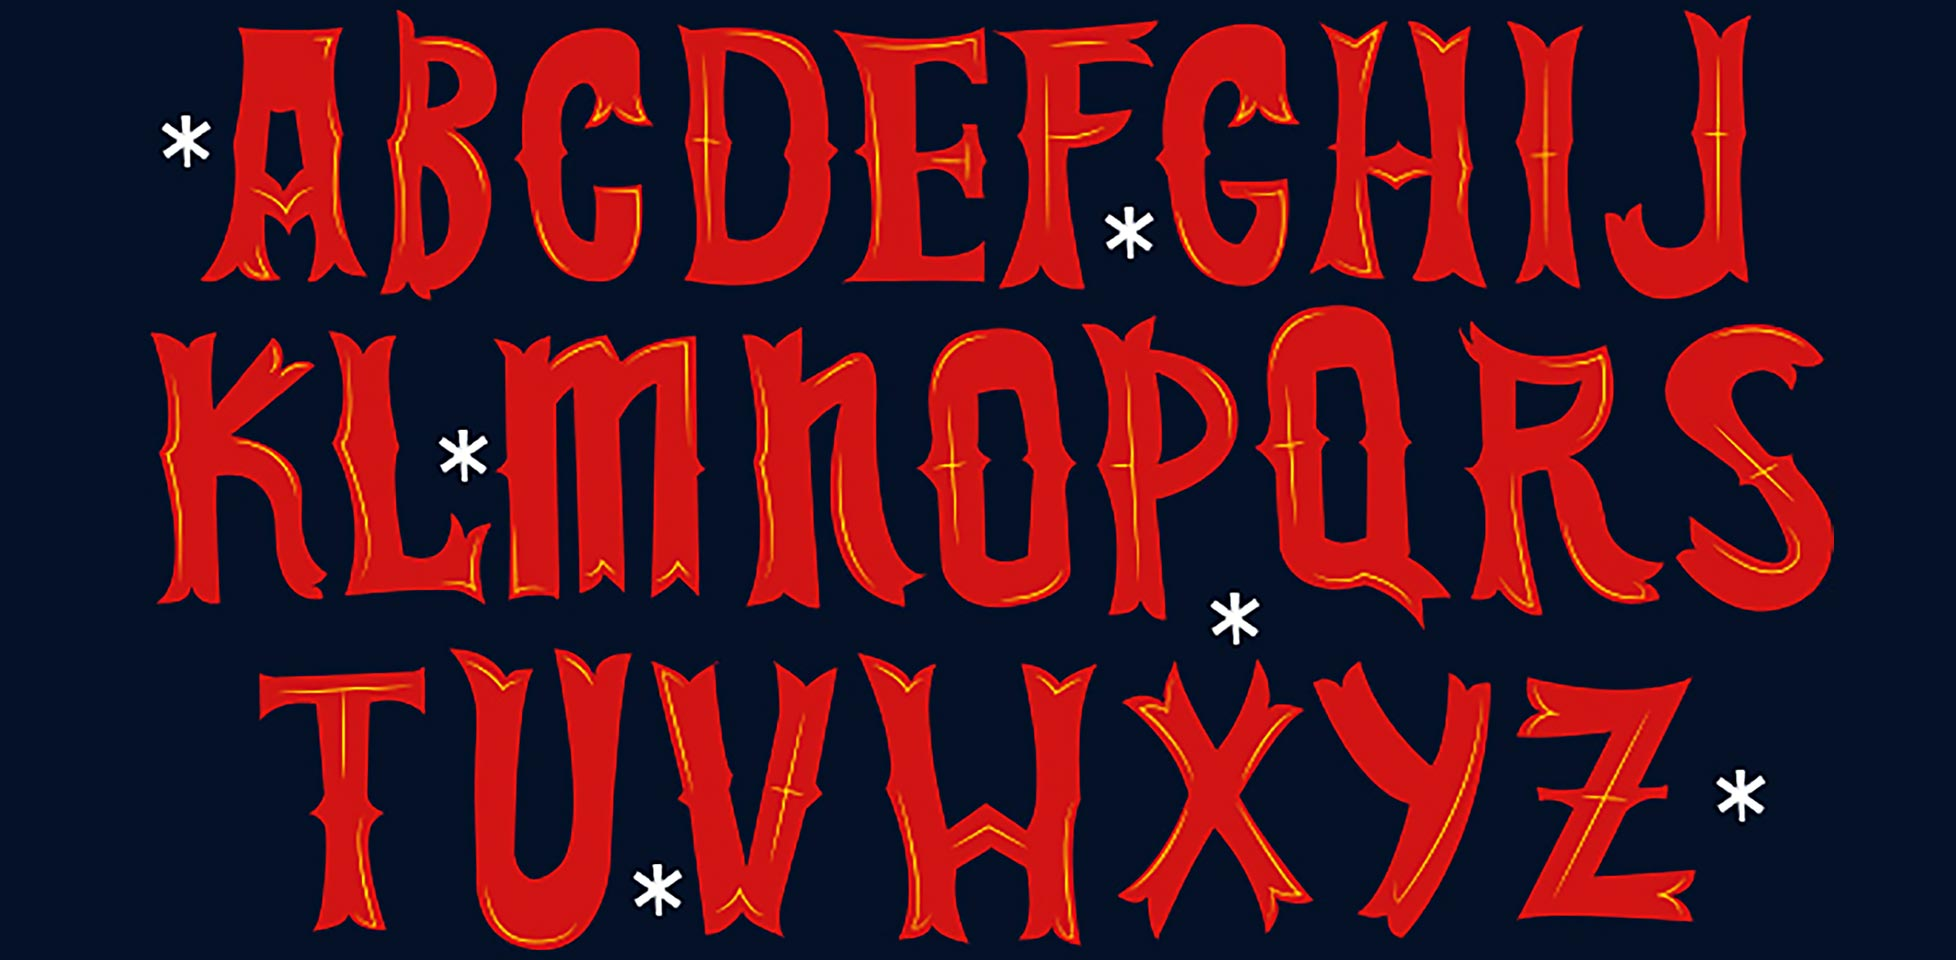 Free download: Christmas Time Display font